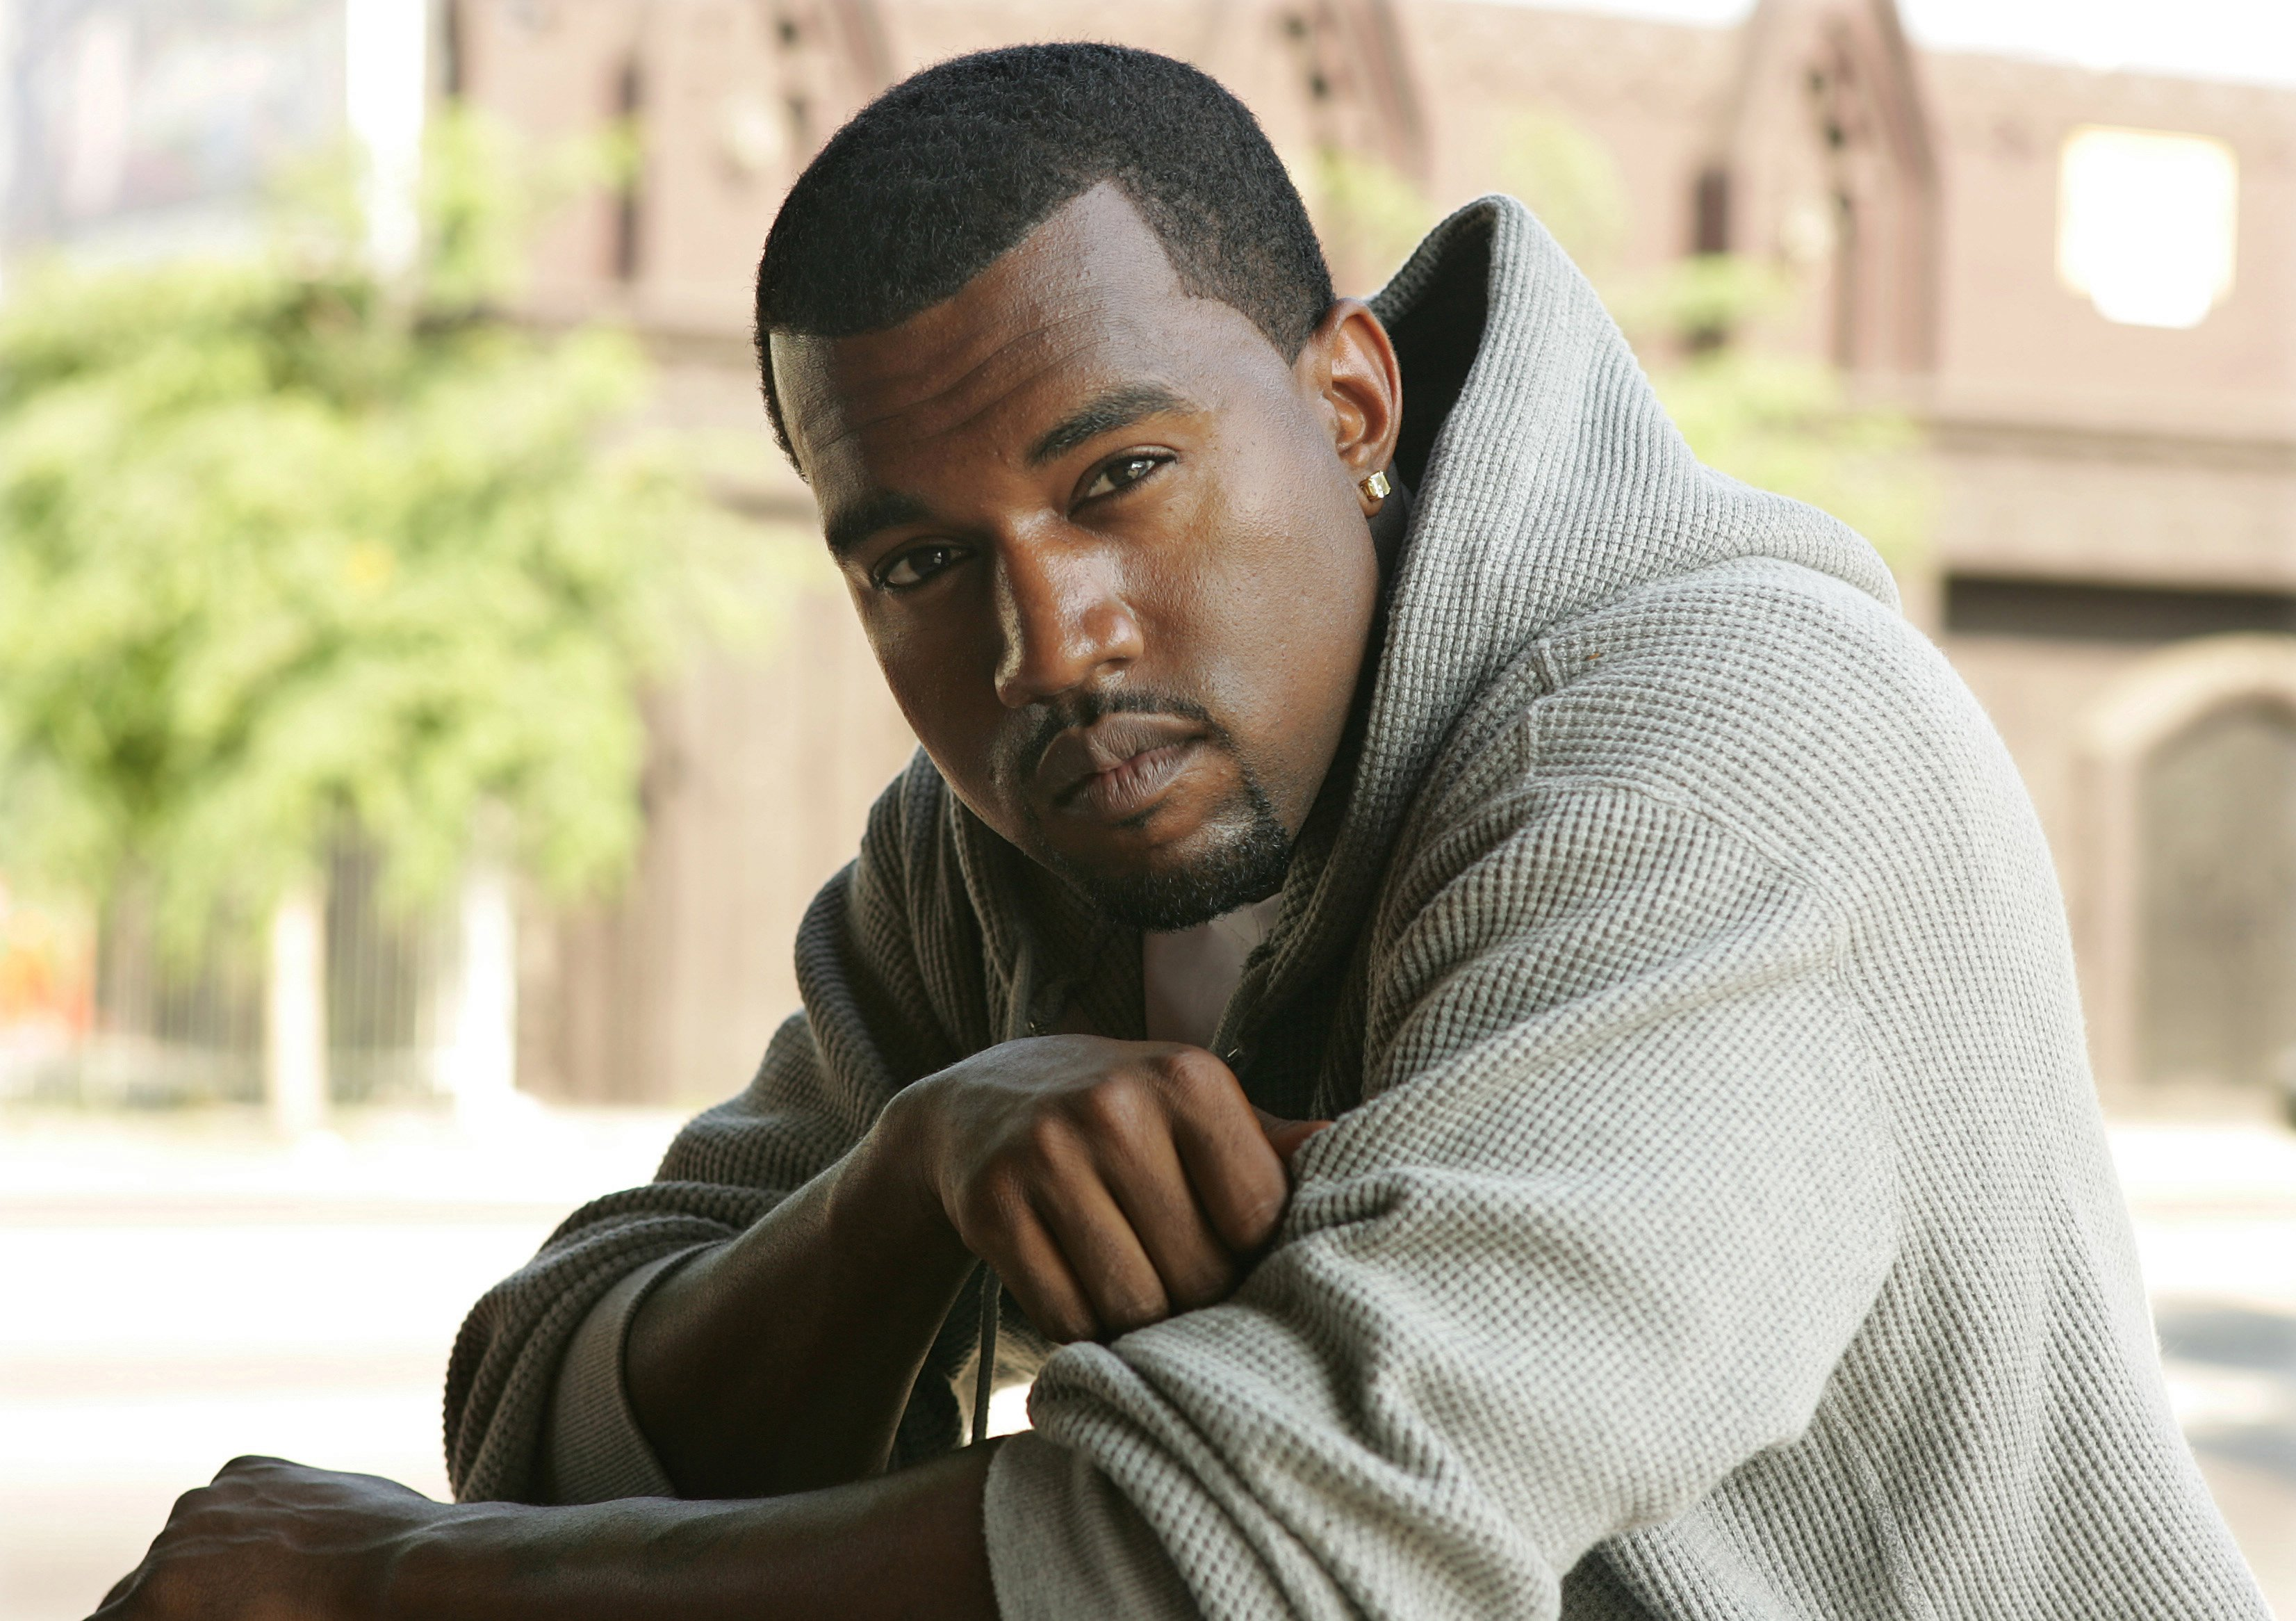 Kanye West photographed July 29, 2005 in Los Angeles, California | Photo: Getty Images